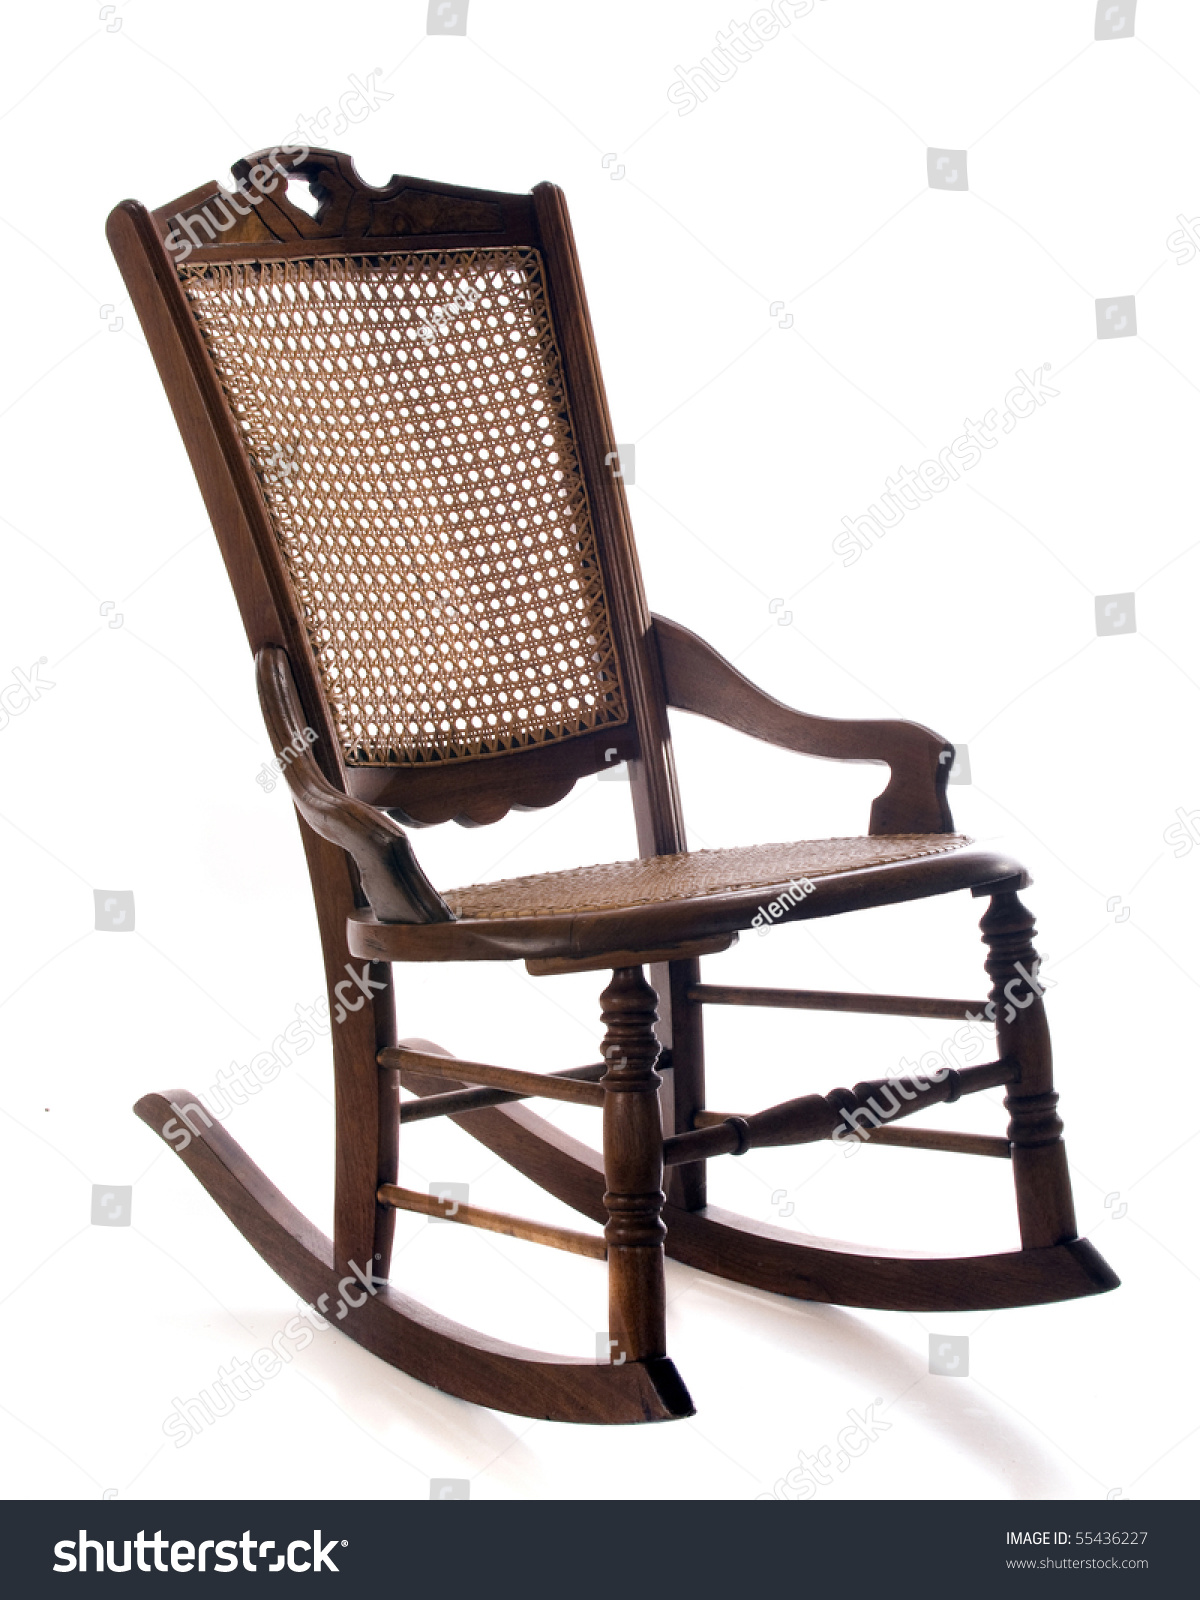 Vintage cane rocking chair - An Antique Cane Rocking Chair Isolated On White